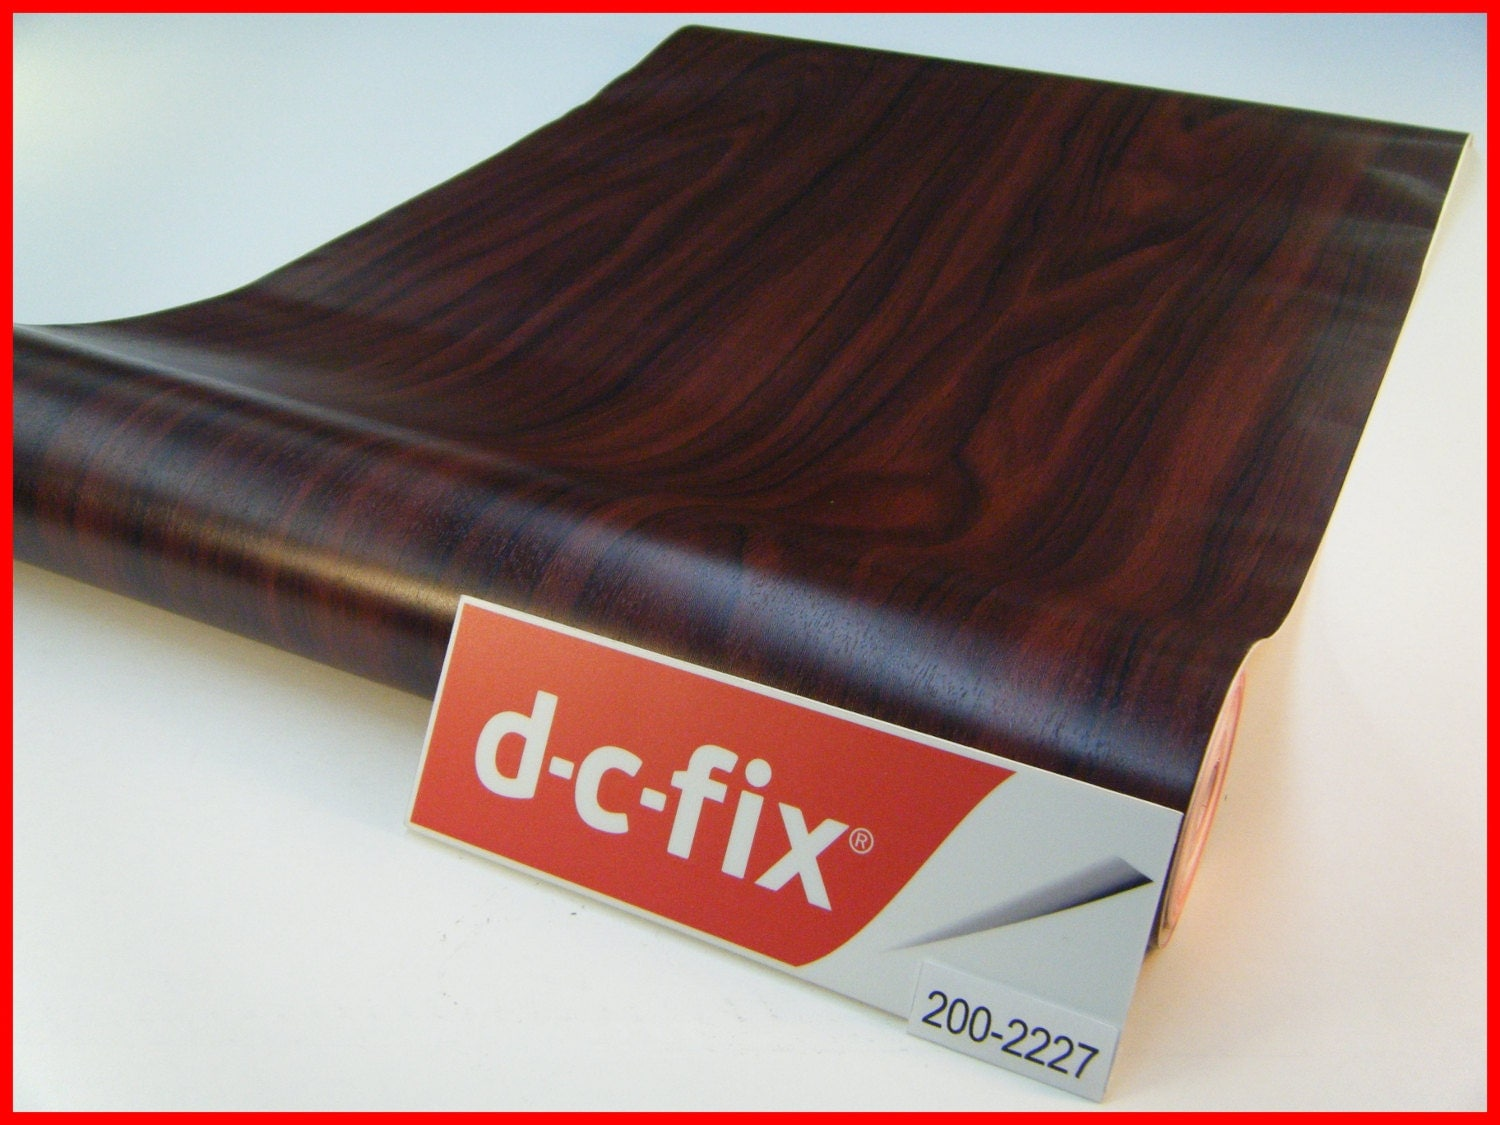 Dc fix wood grain 1m x 45cm design sticky back self adhesive - Dc fix tischdecken ...